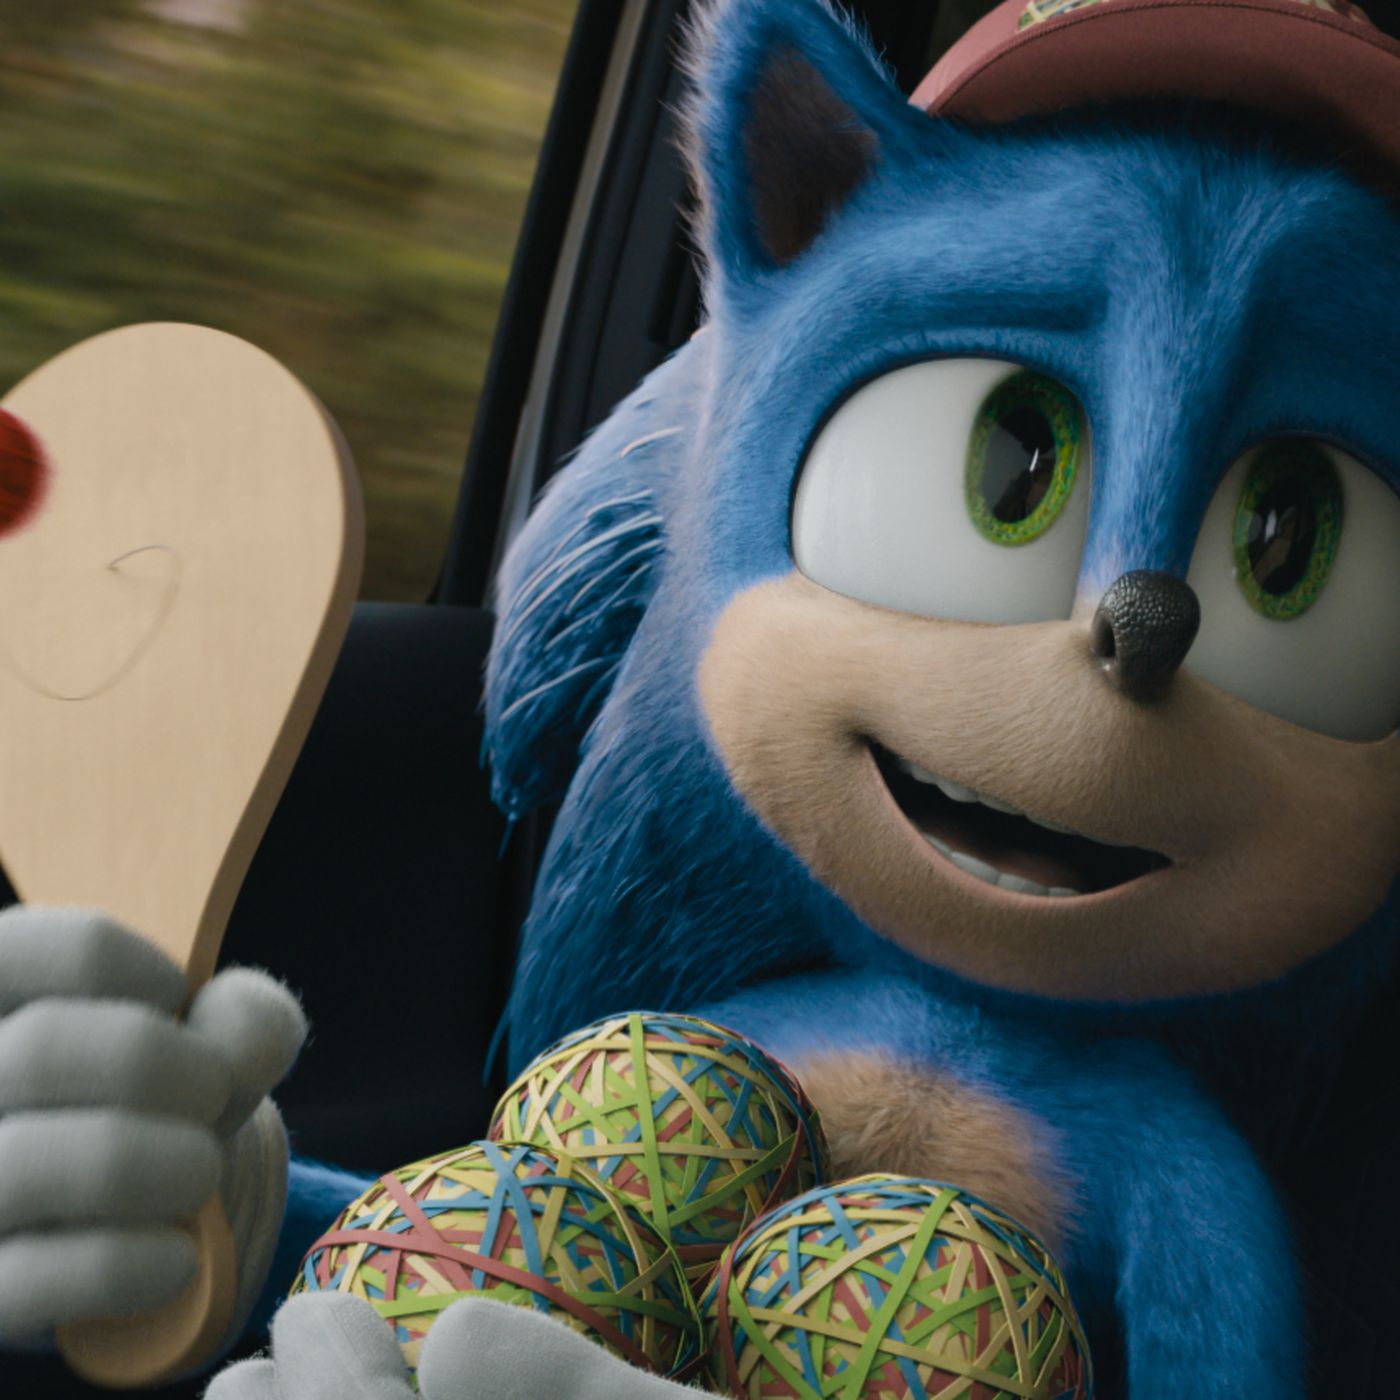 sth ff 009 10 Things The Sonic Movie Gets Wrong About The Games - And 10 Things It Gets Right